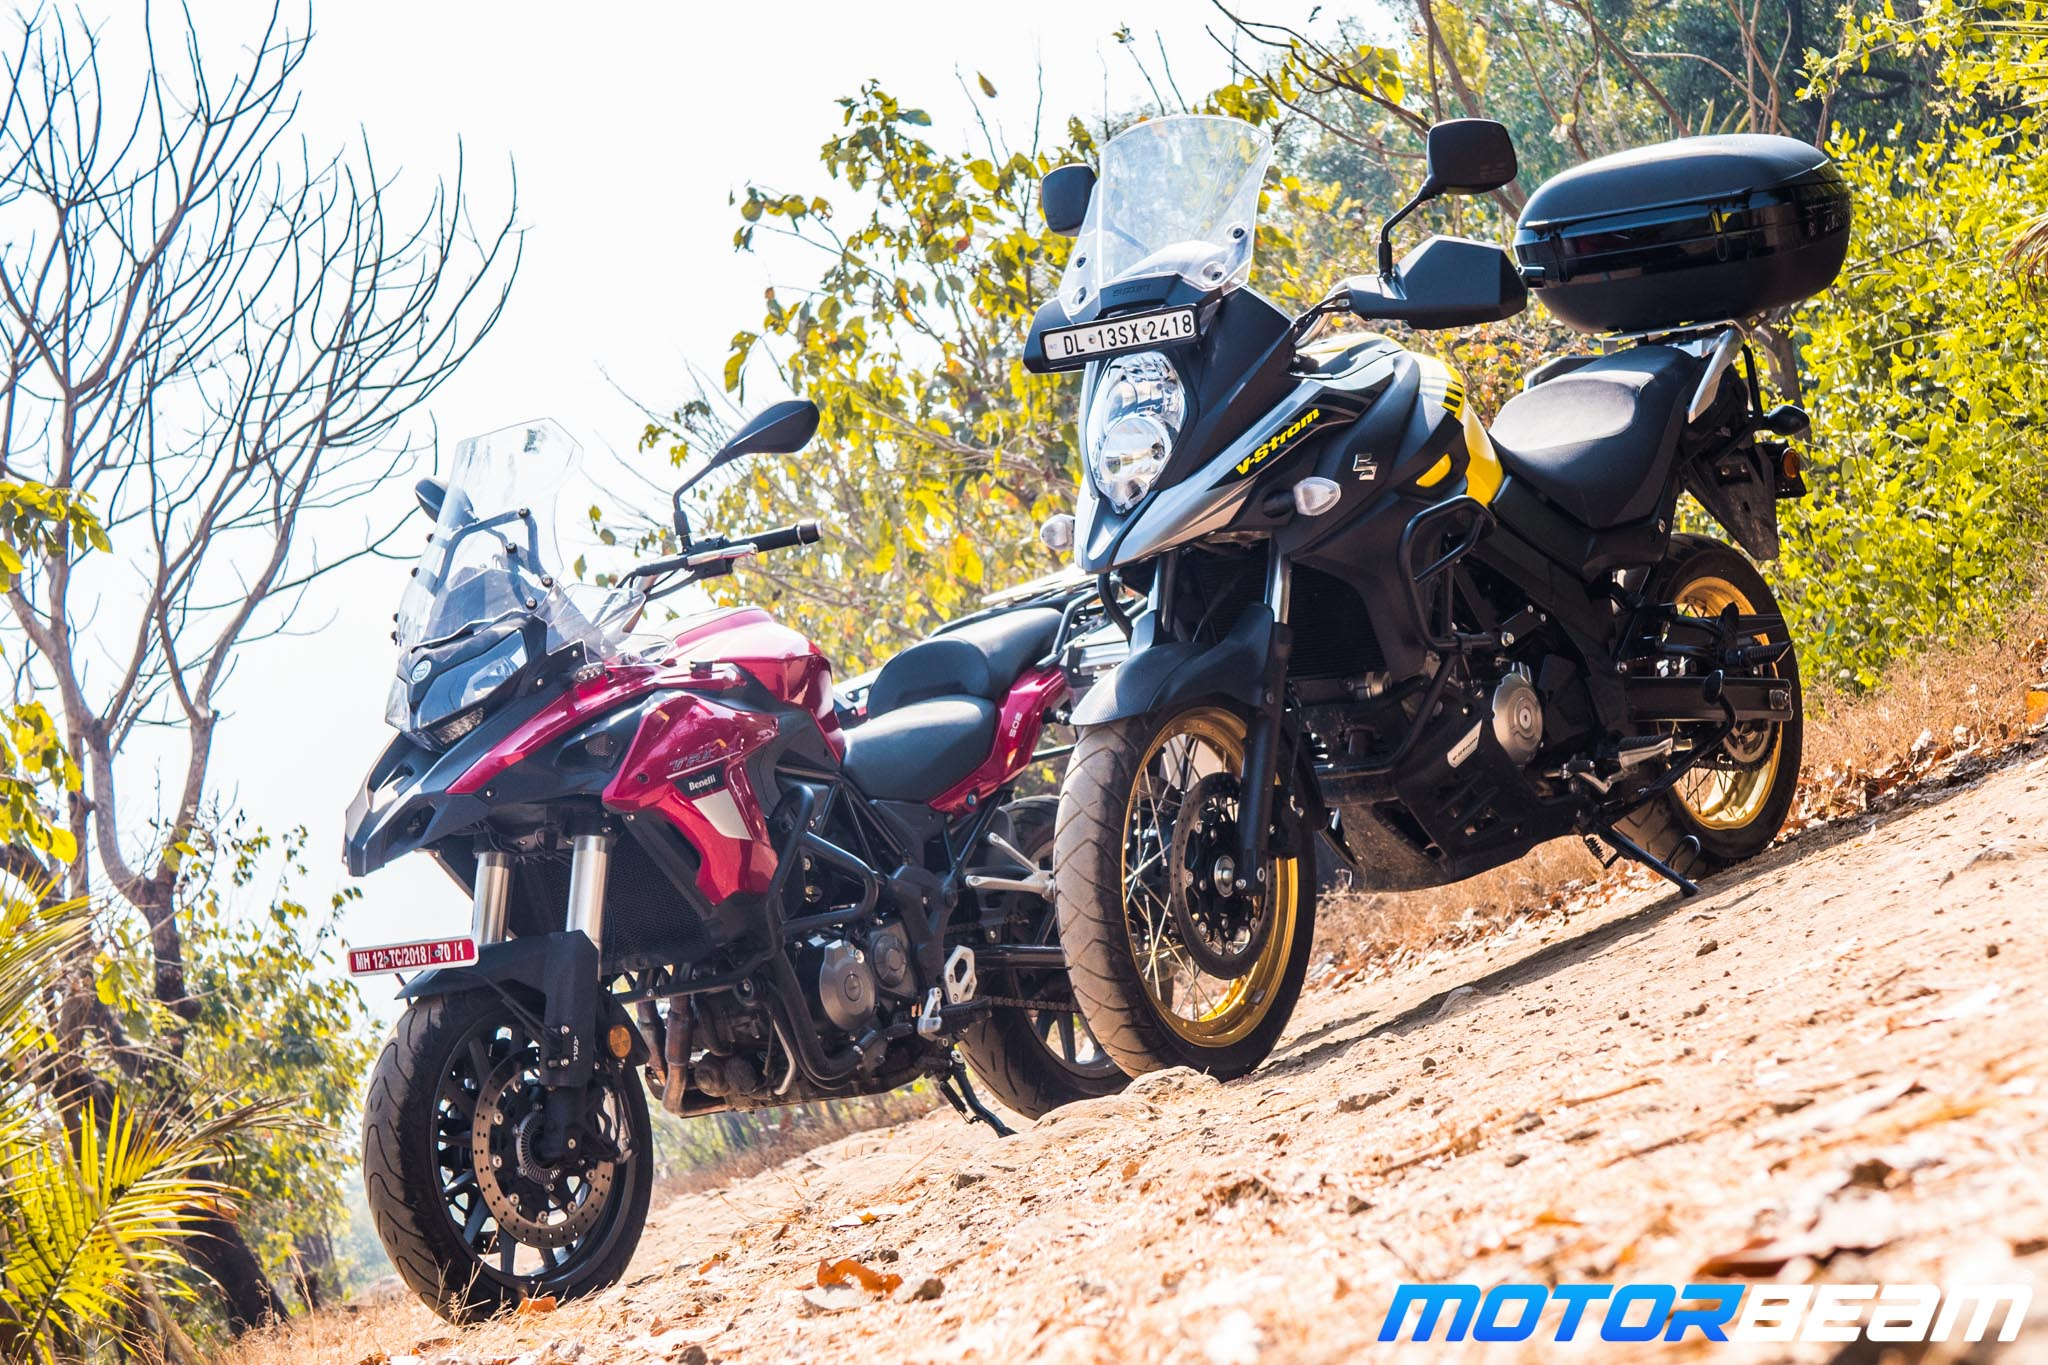 Benelli TRK 502 vs Suzuki VStrom 650XT Comparison Review